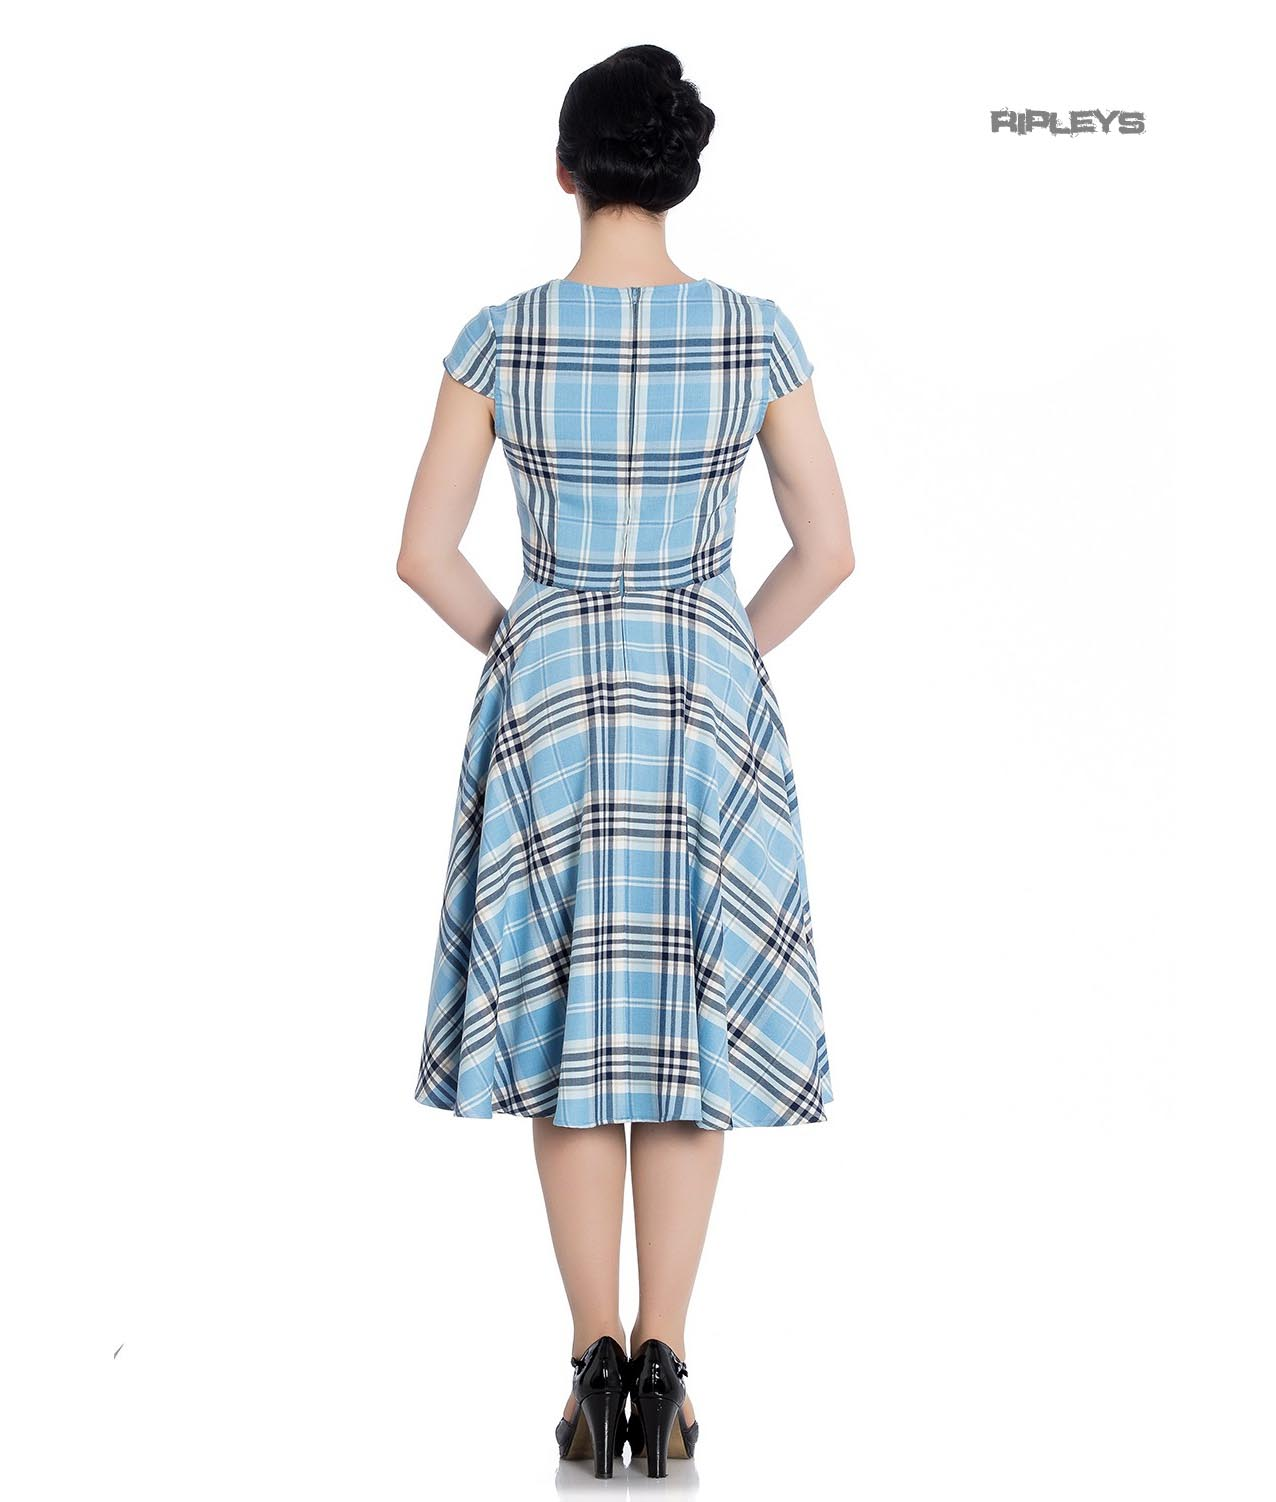 Hell-Bunny-Pinup-50s-Dress-ABERDEEN-Hogmony-Sky-Blue-amp-White-Tartan-All-Sizes thumbnail 20